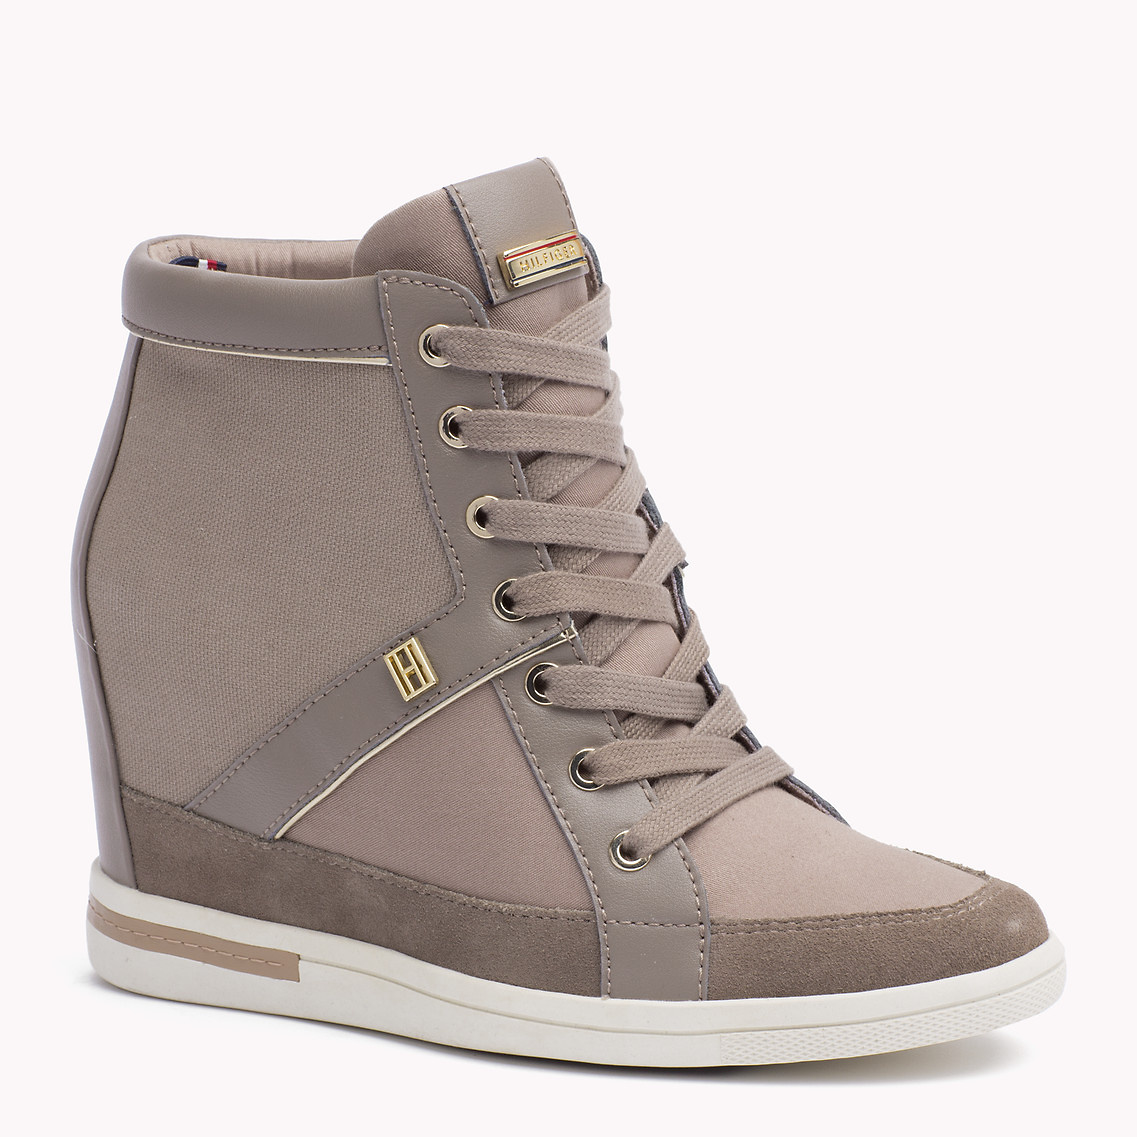 lyst tommy hilfiger mixed canvas wedge sneaker in gray. Black Bedroom Furniture Sets. Home Design Ideas